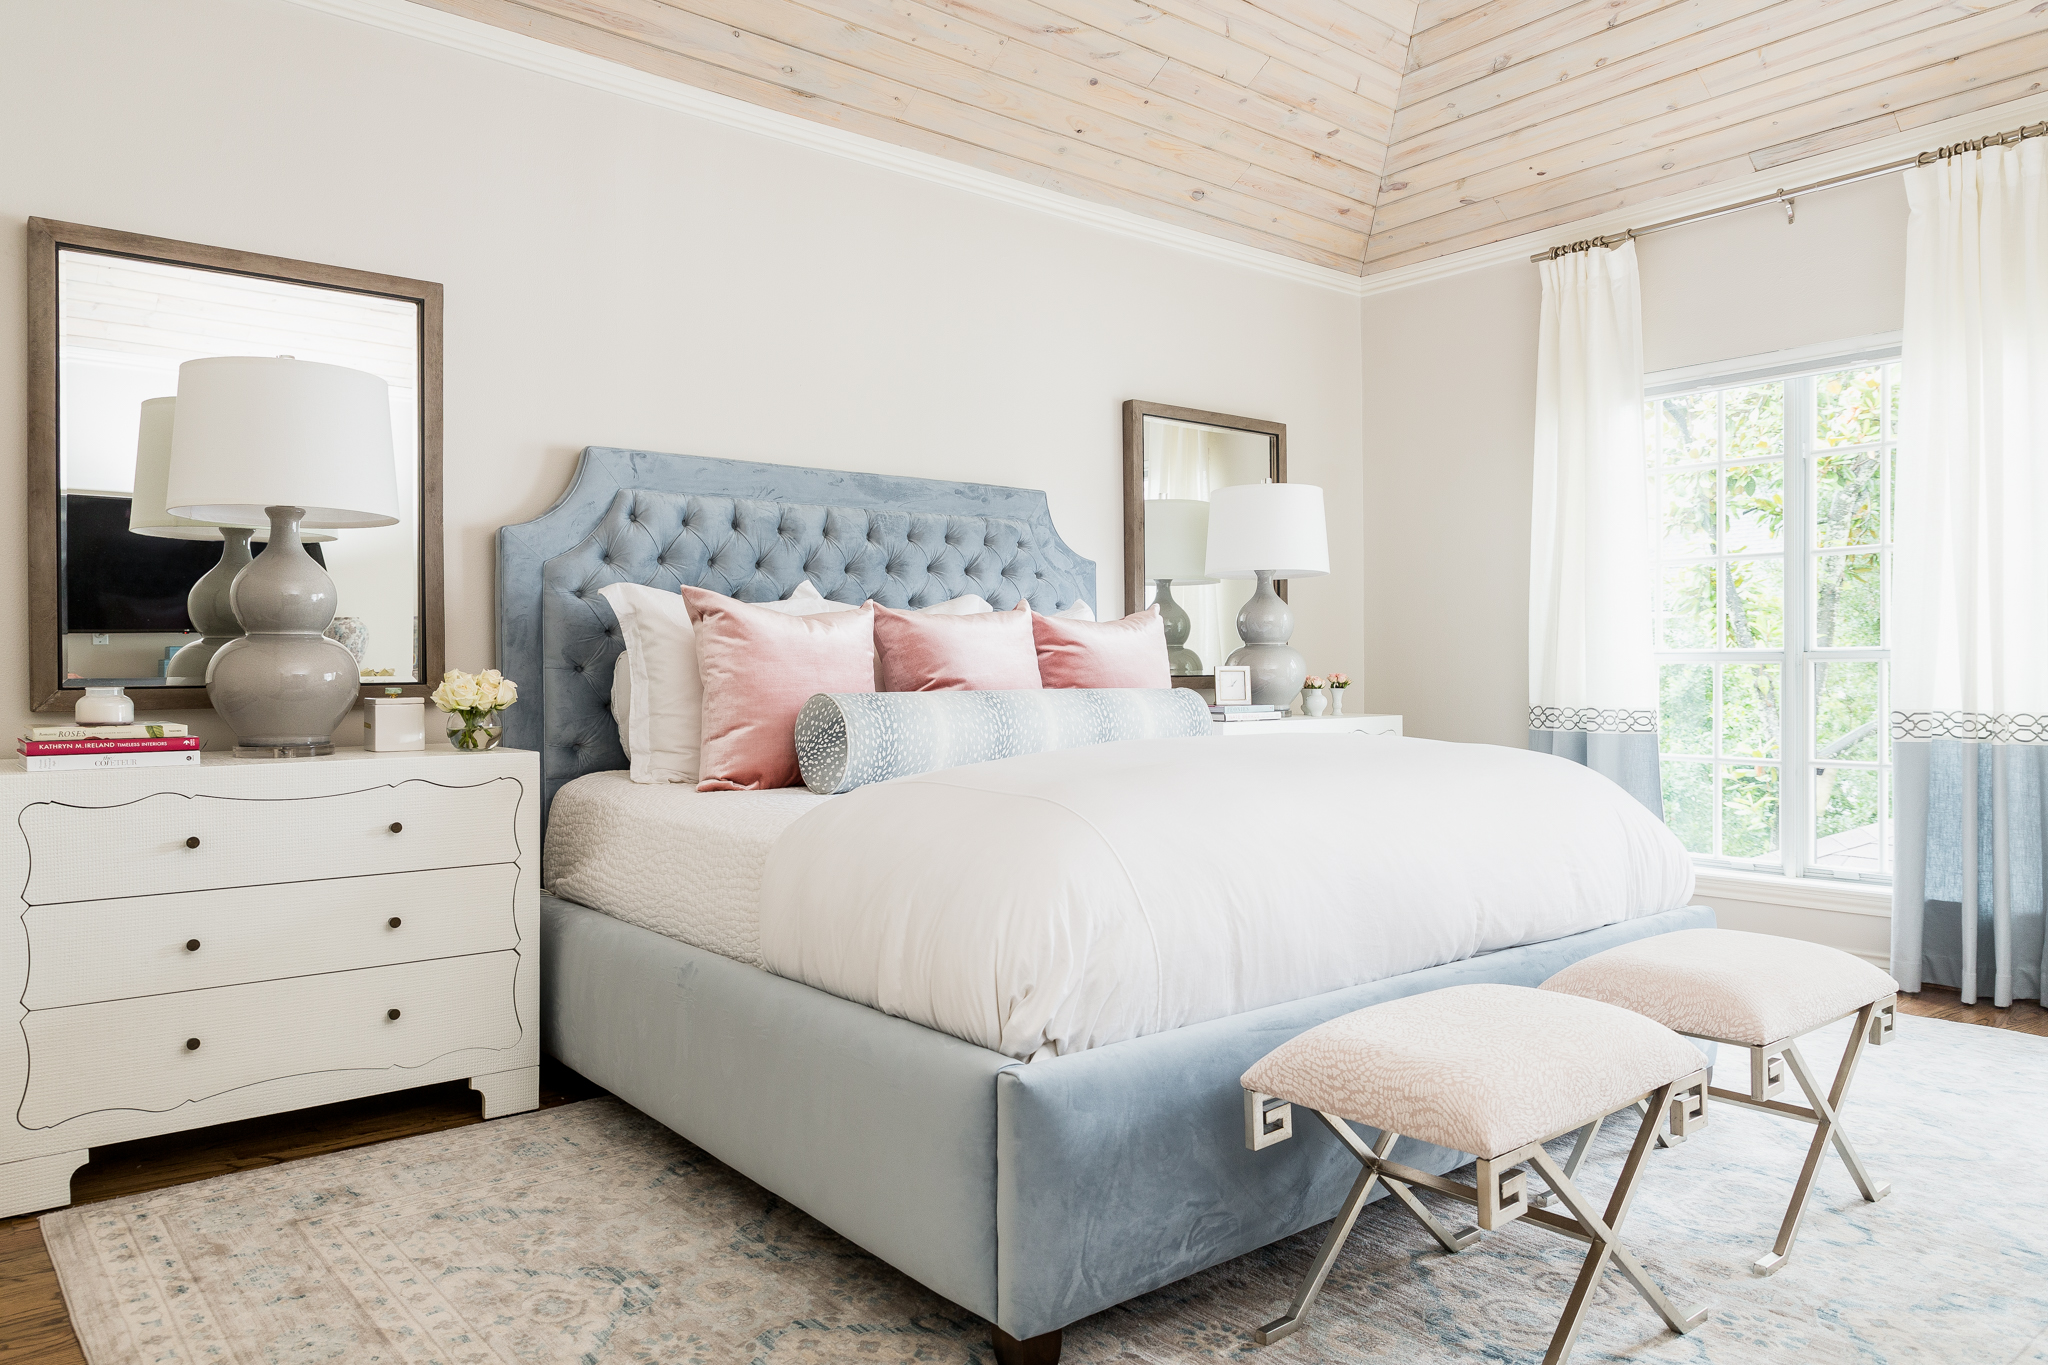 Master Bedroom with blue tufted headboard and high ceilings